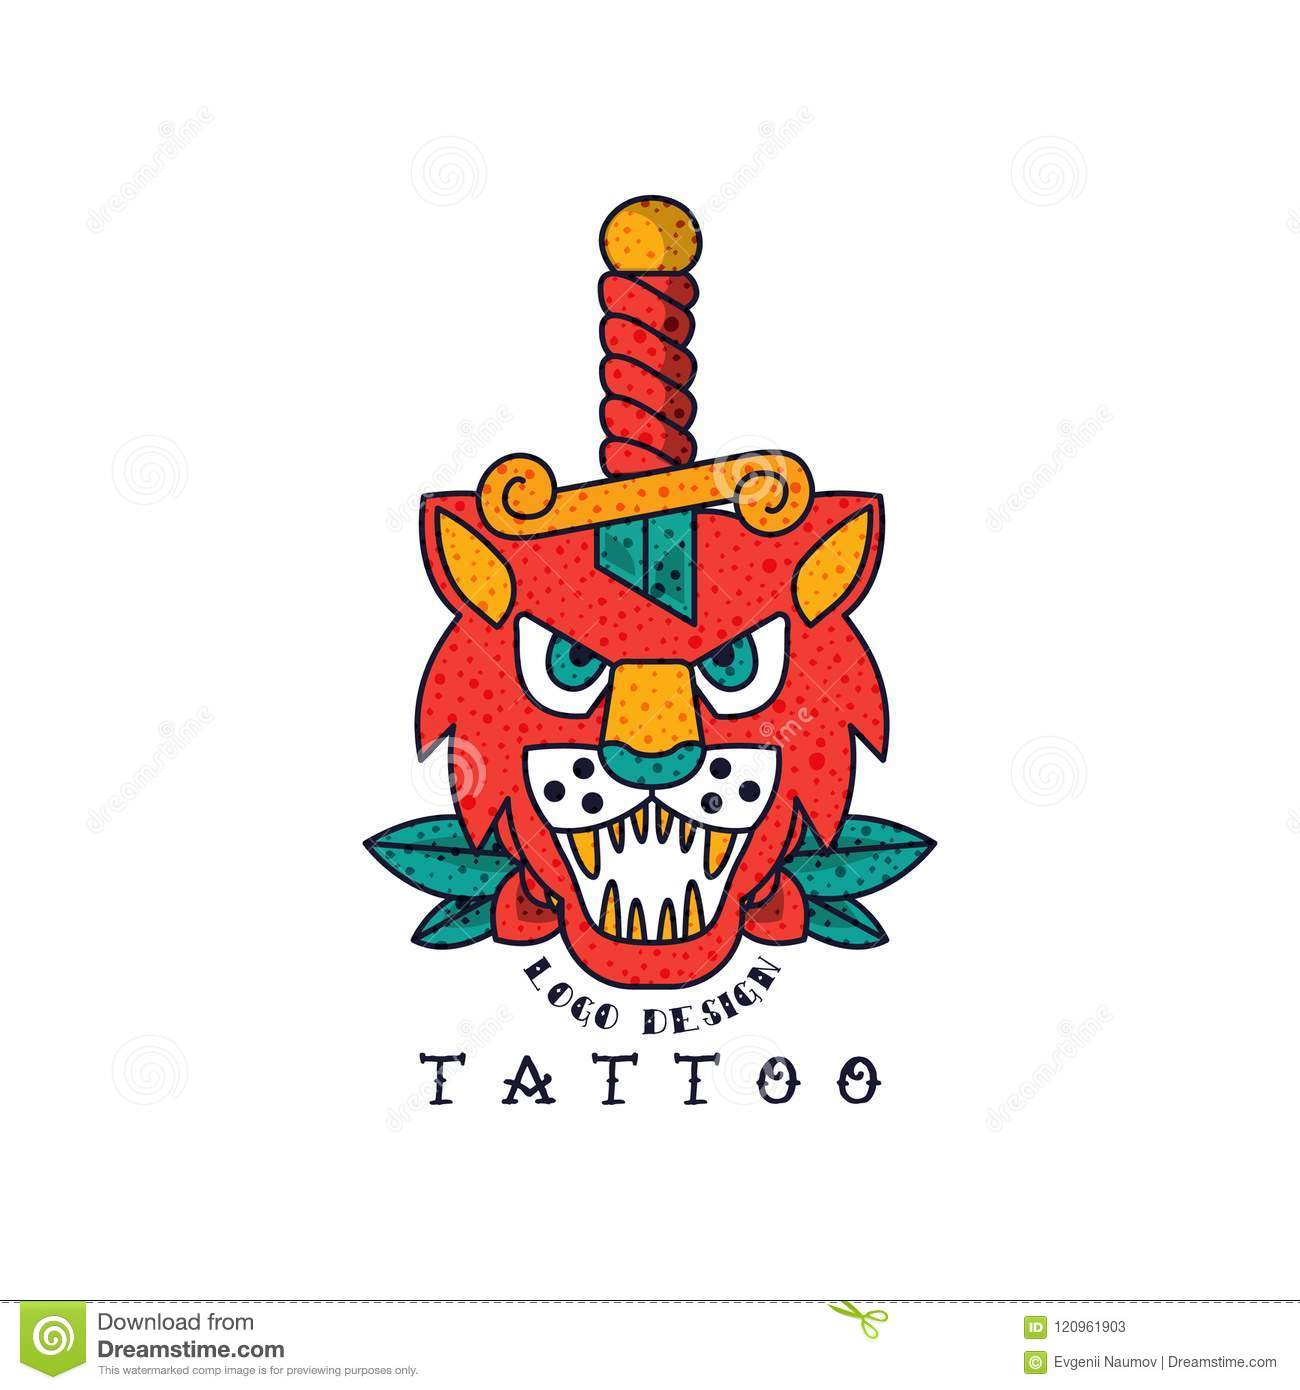 668616bd9 Lion and dagger, classic American old school tattoo logo design vector  Illustration isolated on a white background.